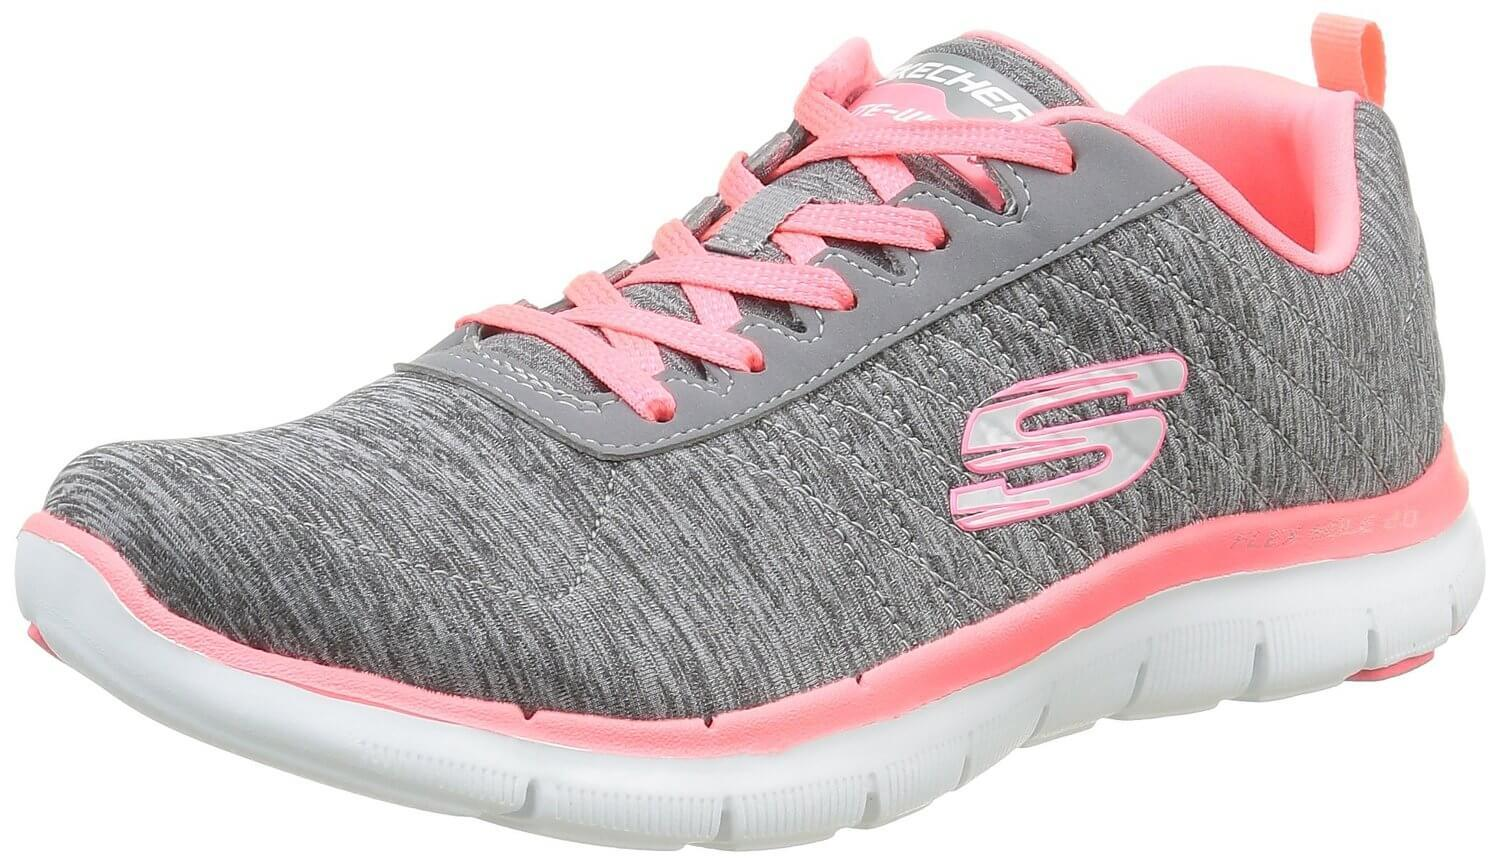 Skechers Flex Appeal Review To Buy Or Not In May 2018